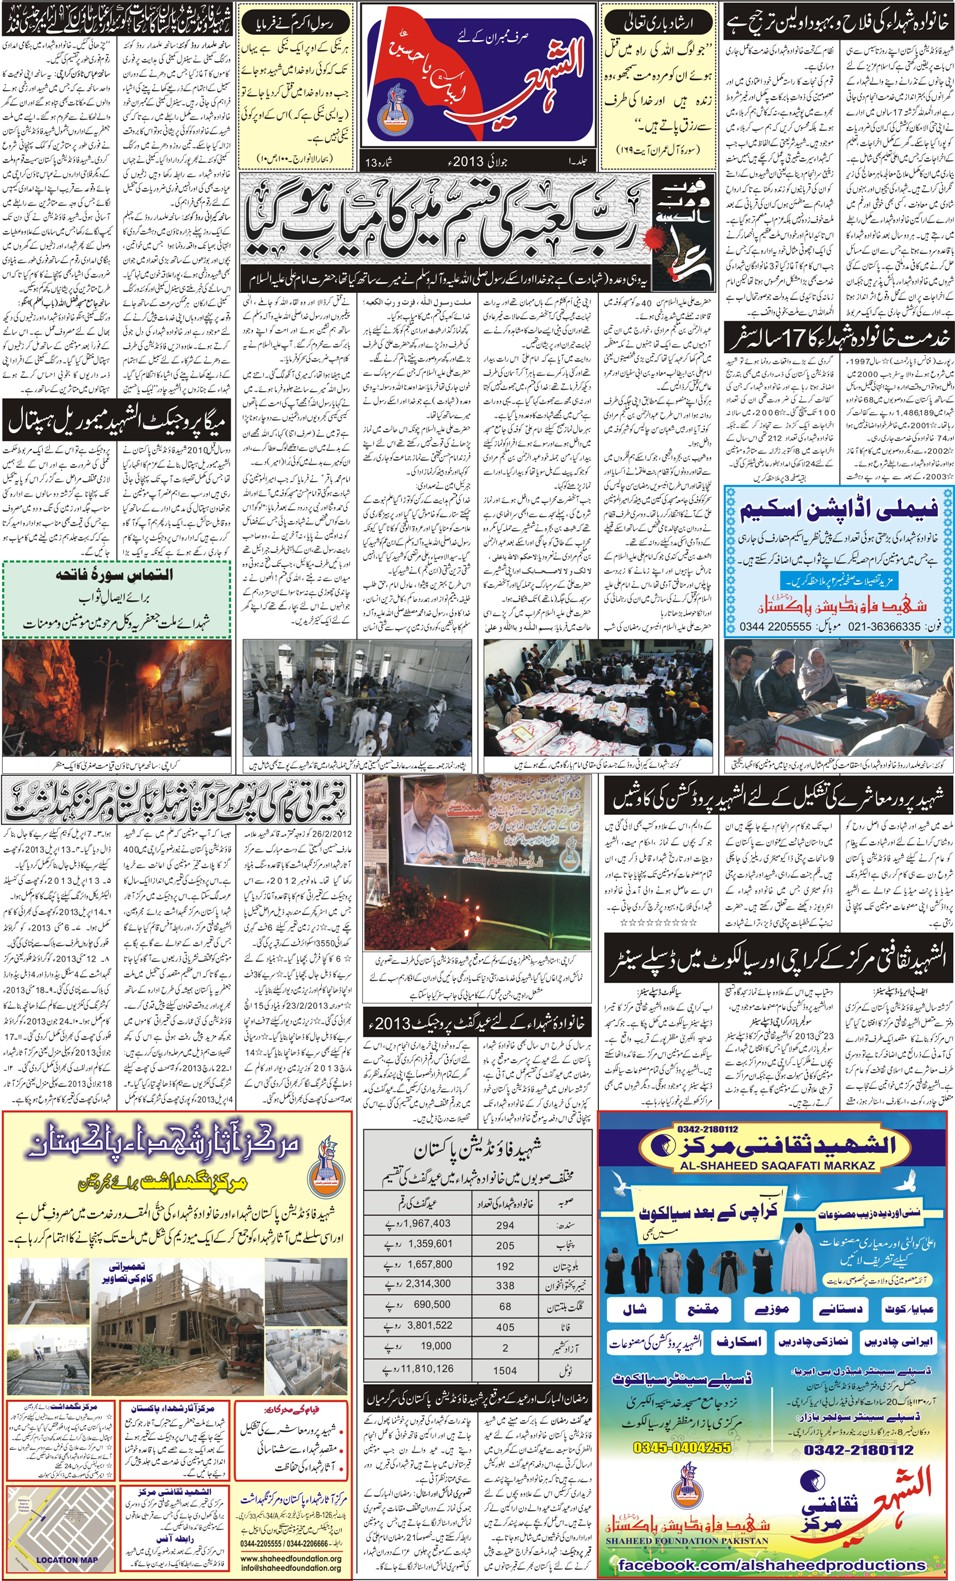 Al-Shaheed News Paper July 2013